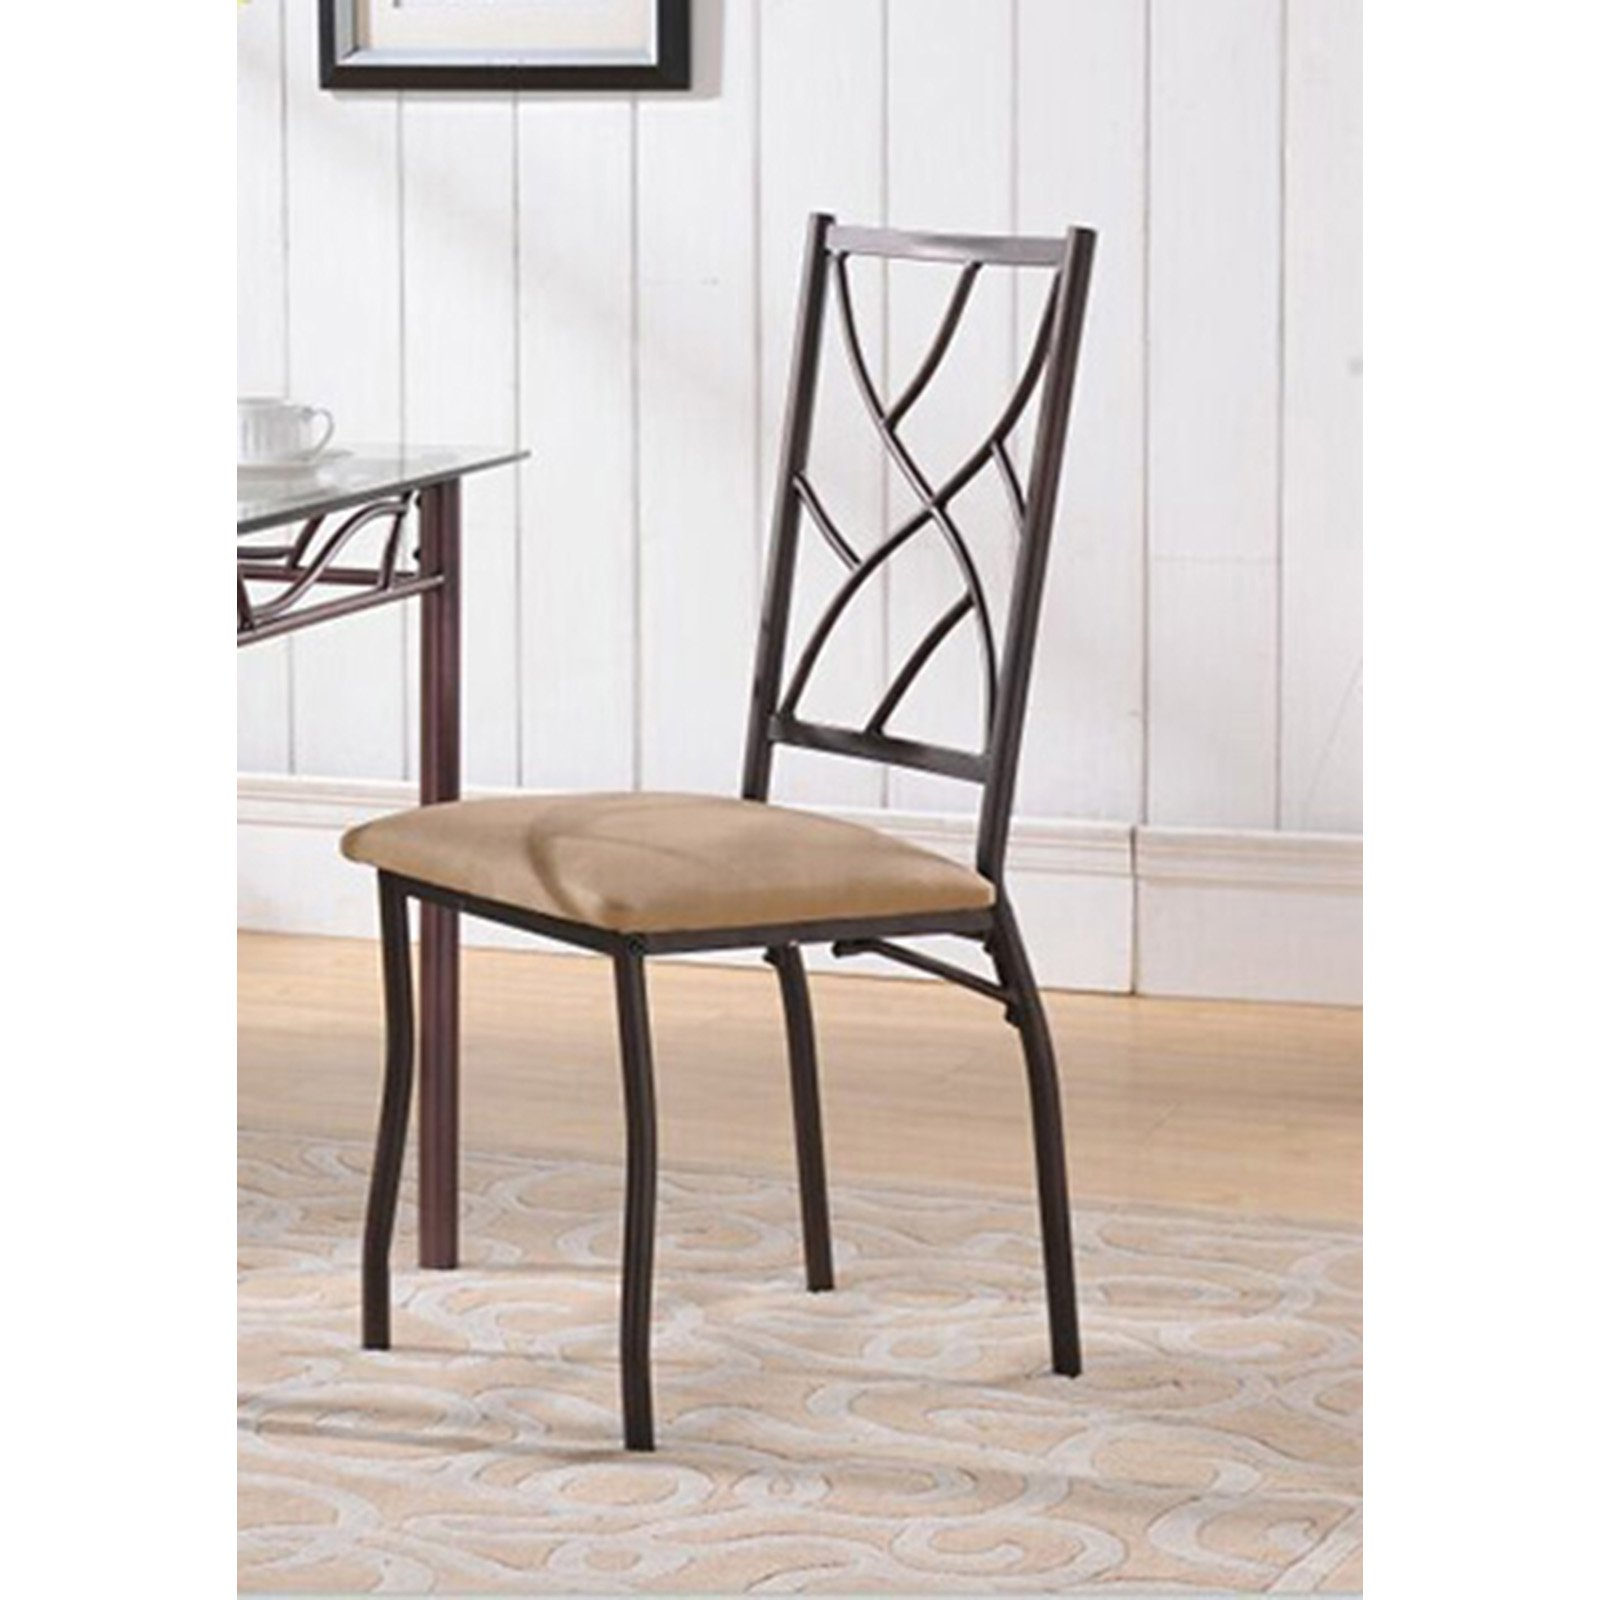 K&B Furniture Bronze Metal and Fabric Dining Chair - Set of 2